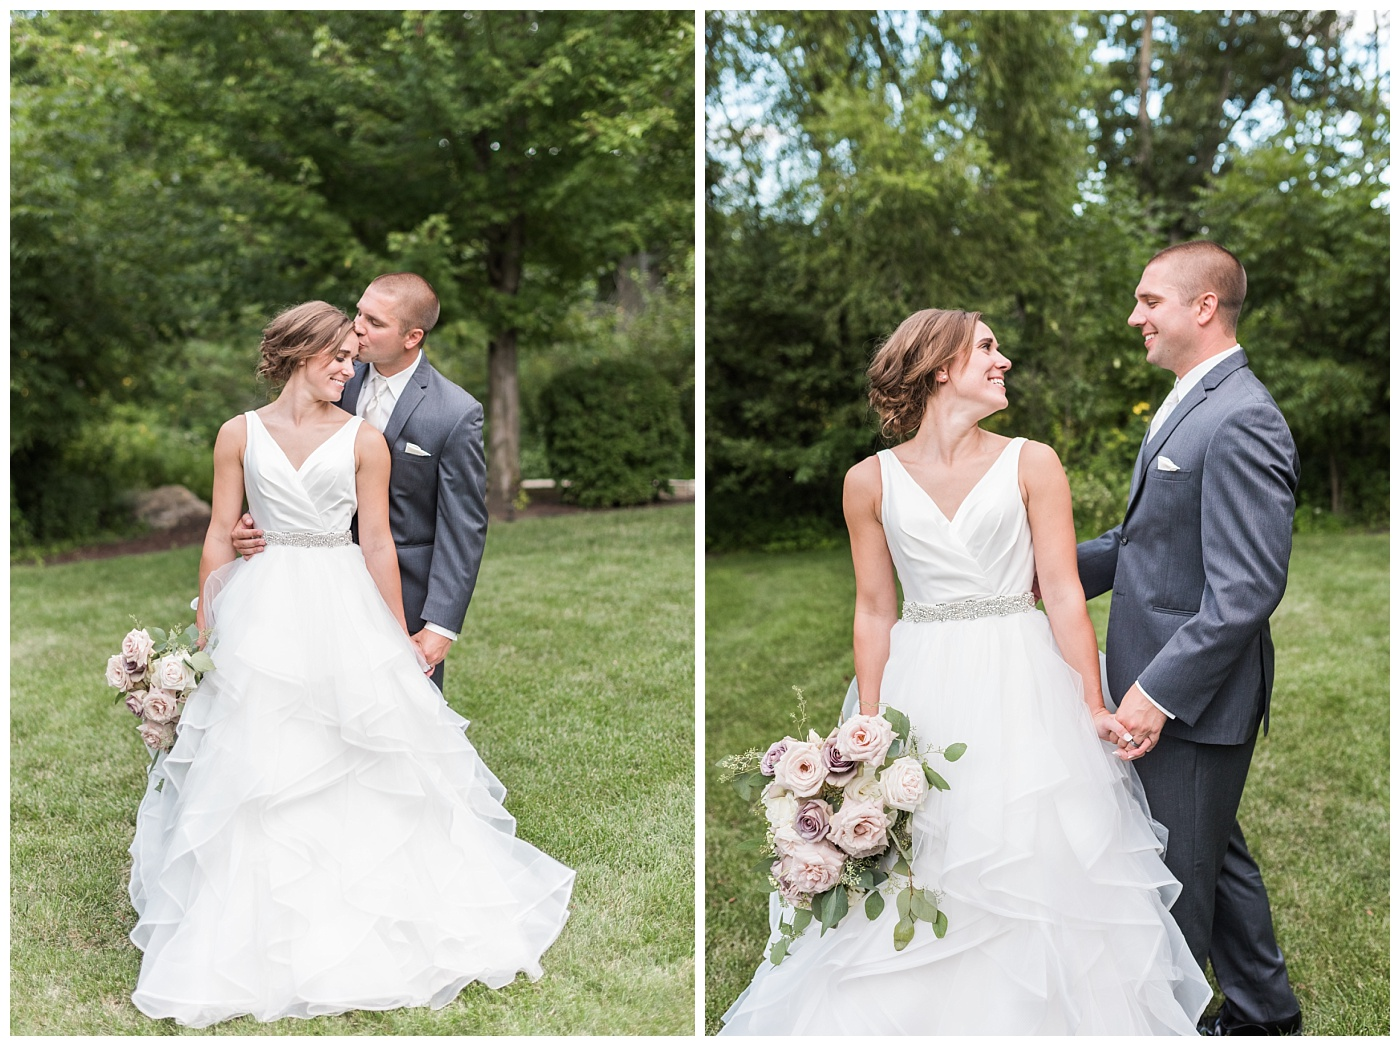 Stephanie Marie Photography Newman Catholic Center Ceremony Bella Sala Reception Tiffin Iowa City Wedding Photographer Chelsey Justin Meyers_0043-1.jpg